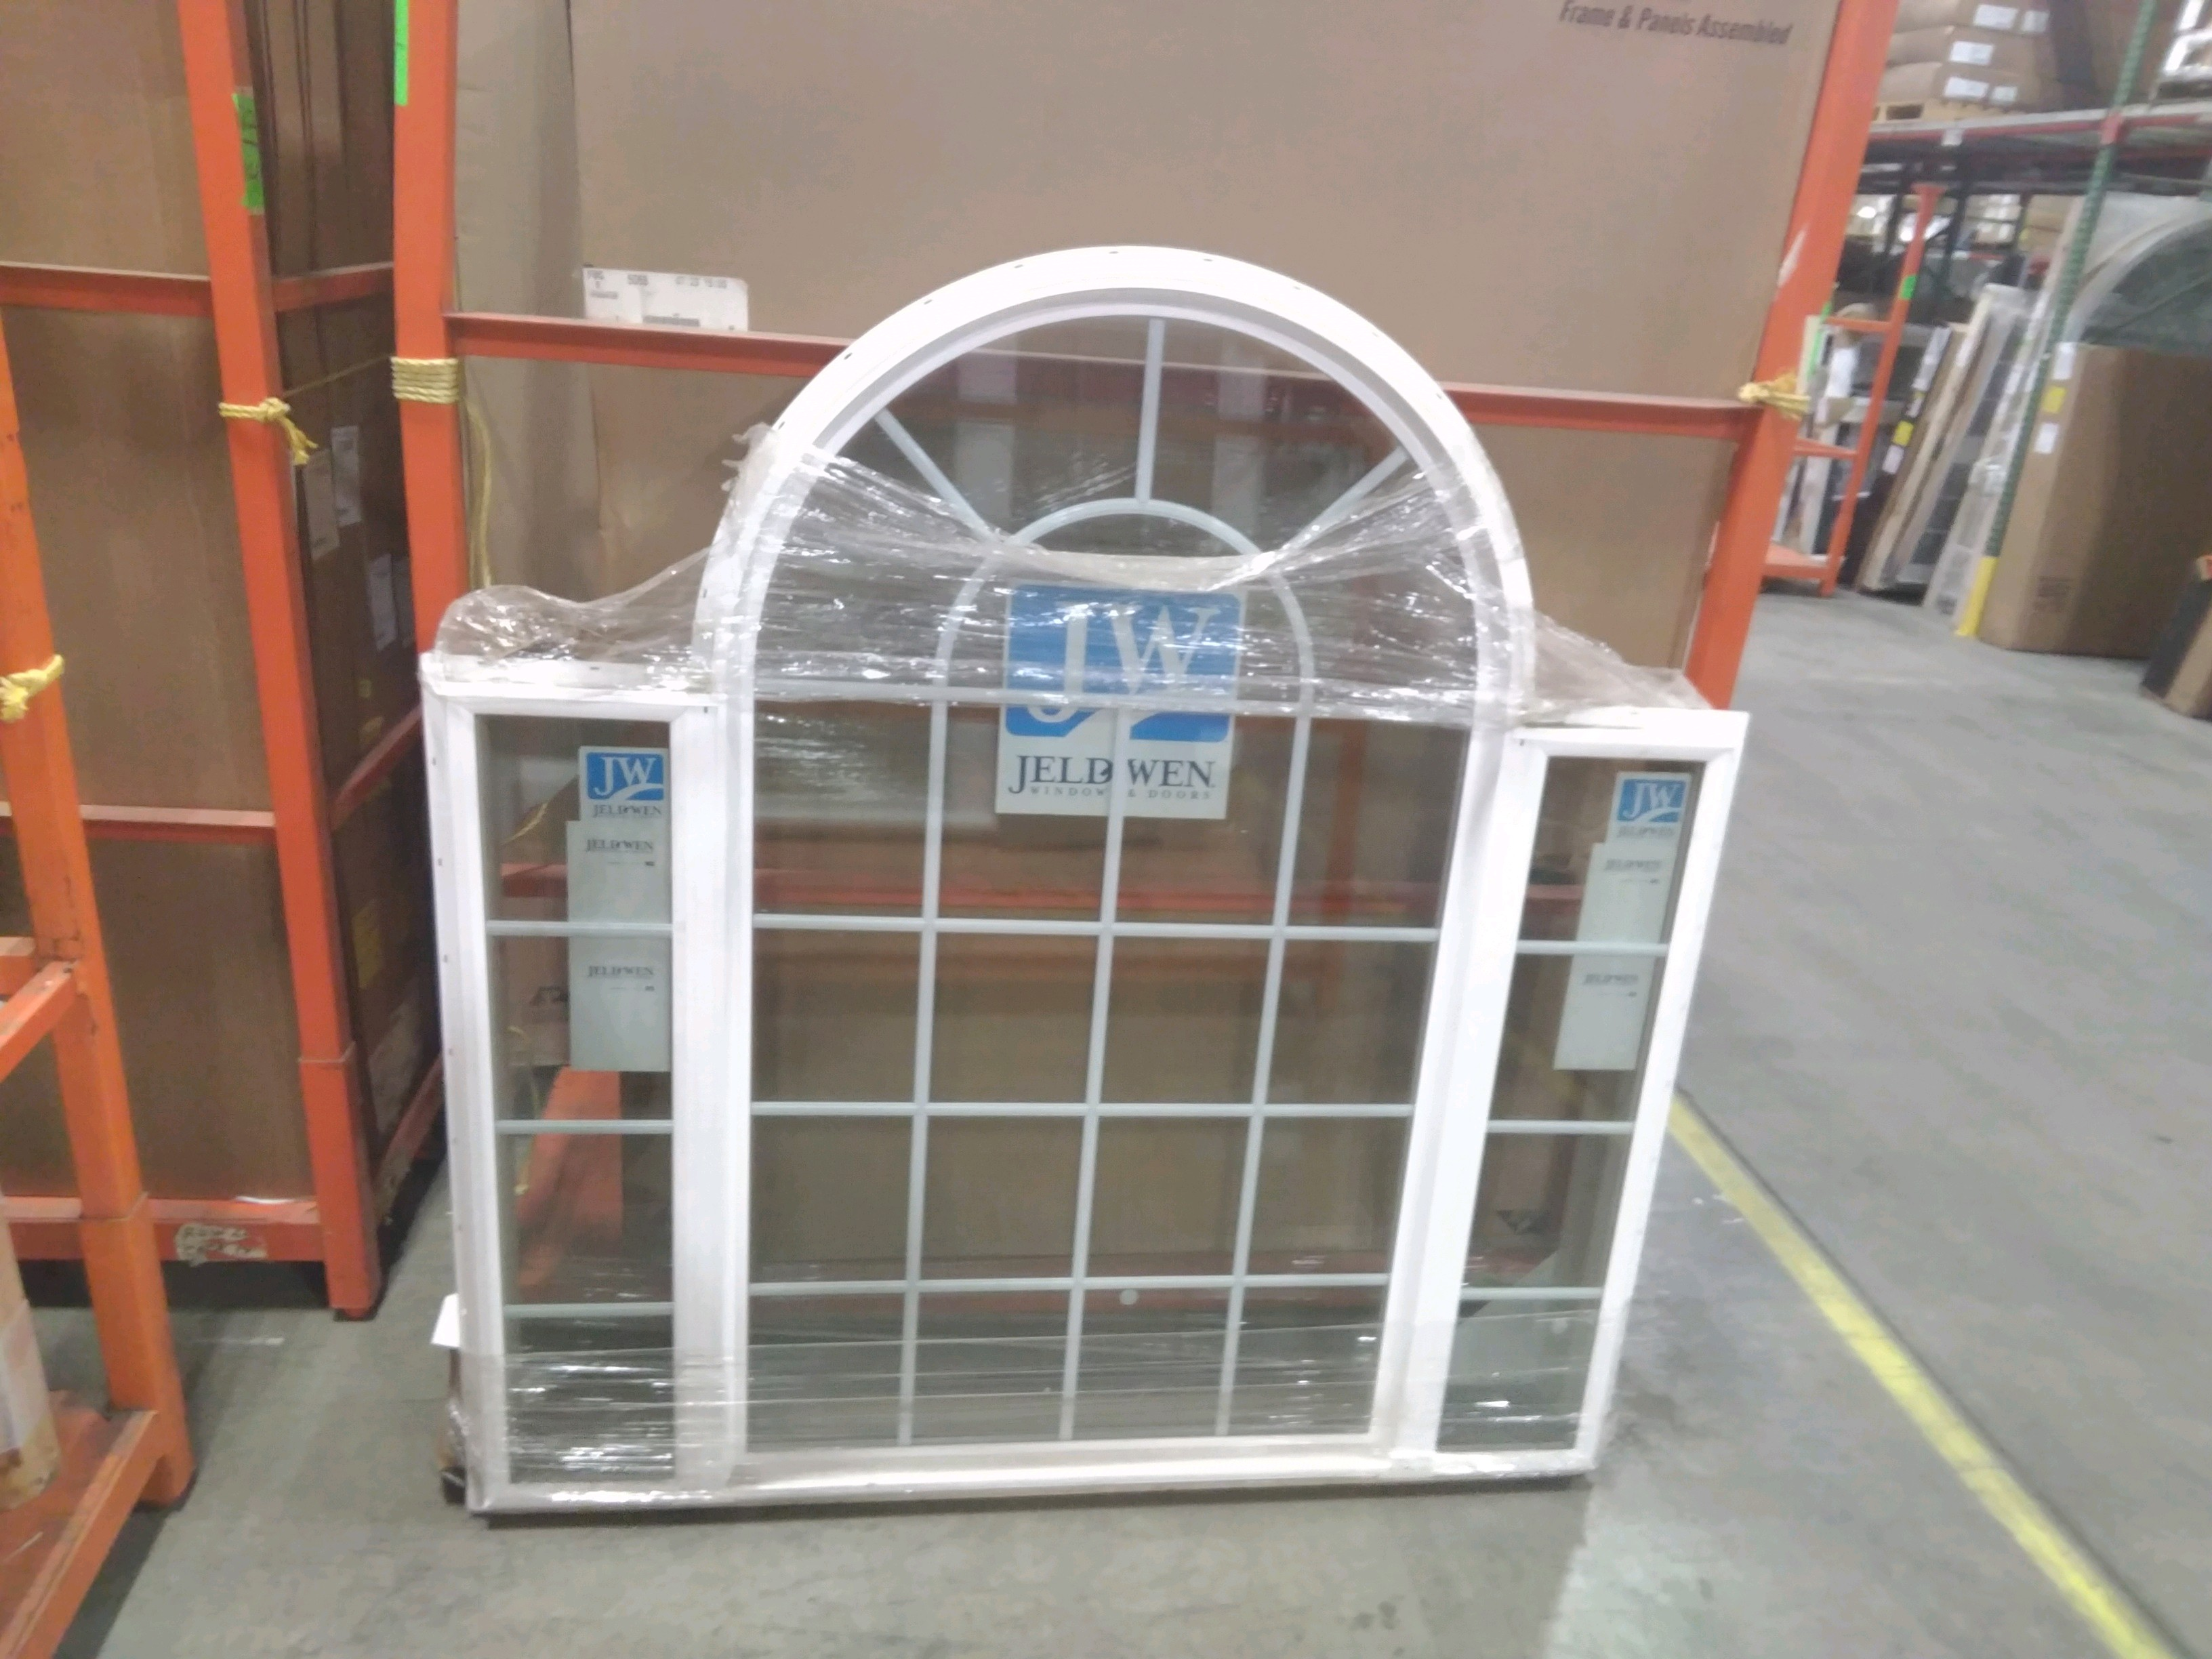 Jeld-Wen Triple, Half round Center Window